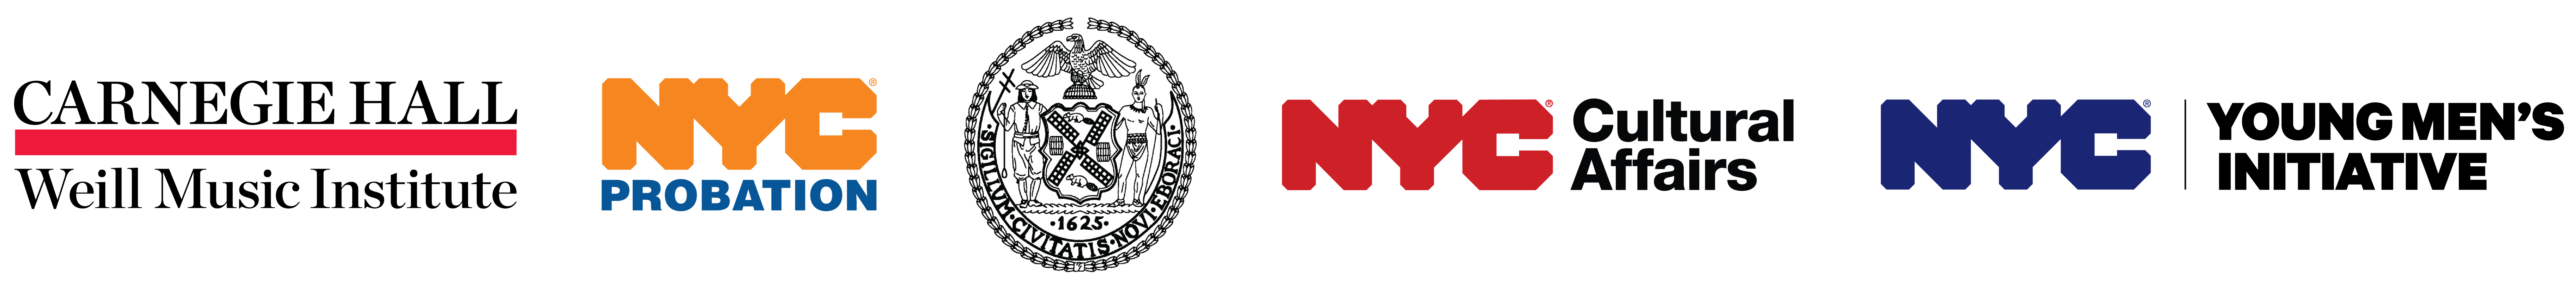 Logos for Carnegie Hall Weill Music Institute, NYC Probation, NYC Council, NYC Cultural Affairs, and NYC Young Men's Initiative